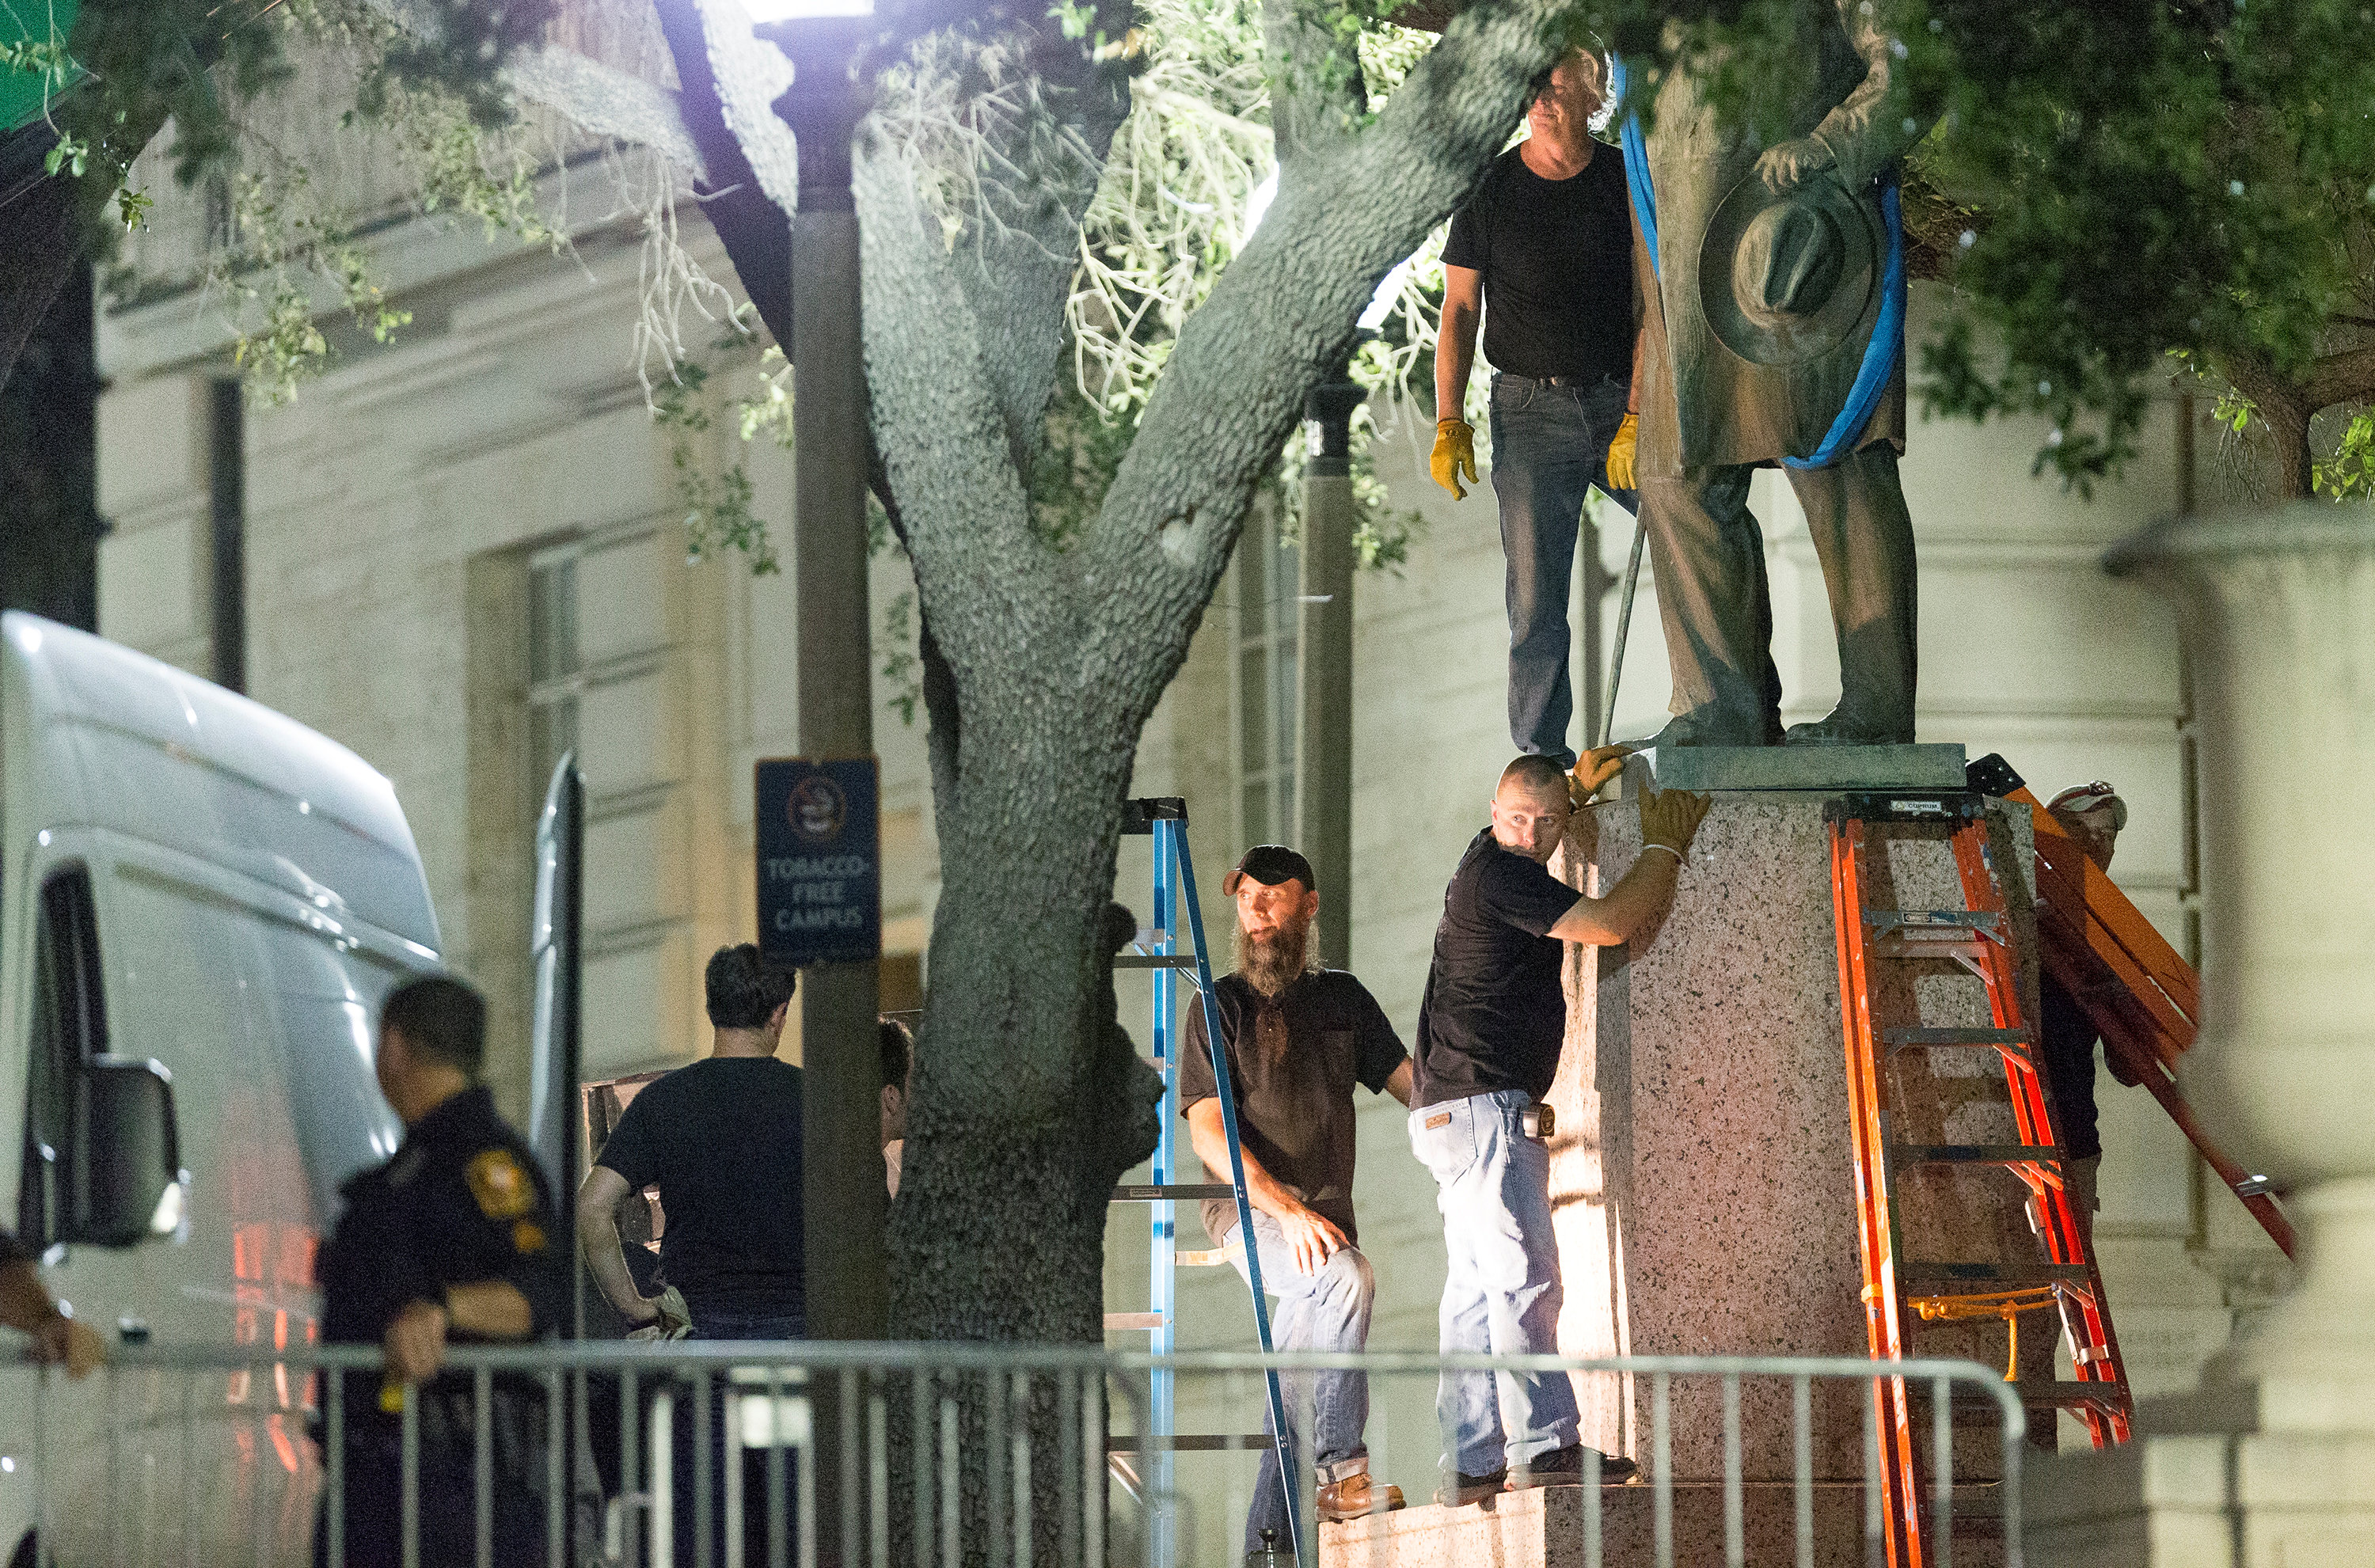 Workers remove Confederate Postmaster General John Reagan statue from the south mall of the University of Texas in Austin, Texas on Aug. 21, 2017. (REUTERS/Stephen Spillman)